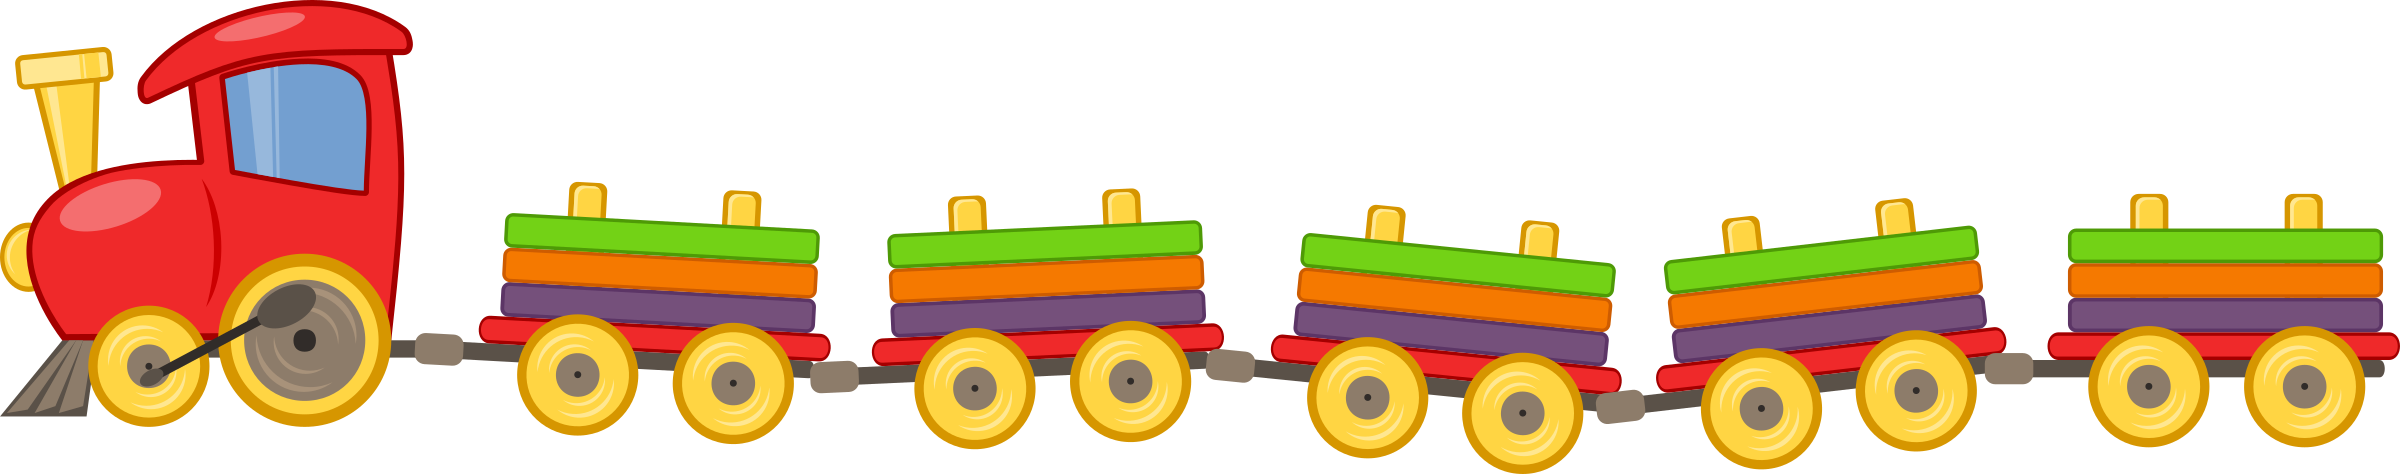 Toy train with 5 wagons by cweiske